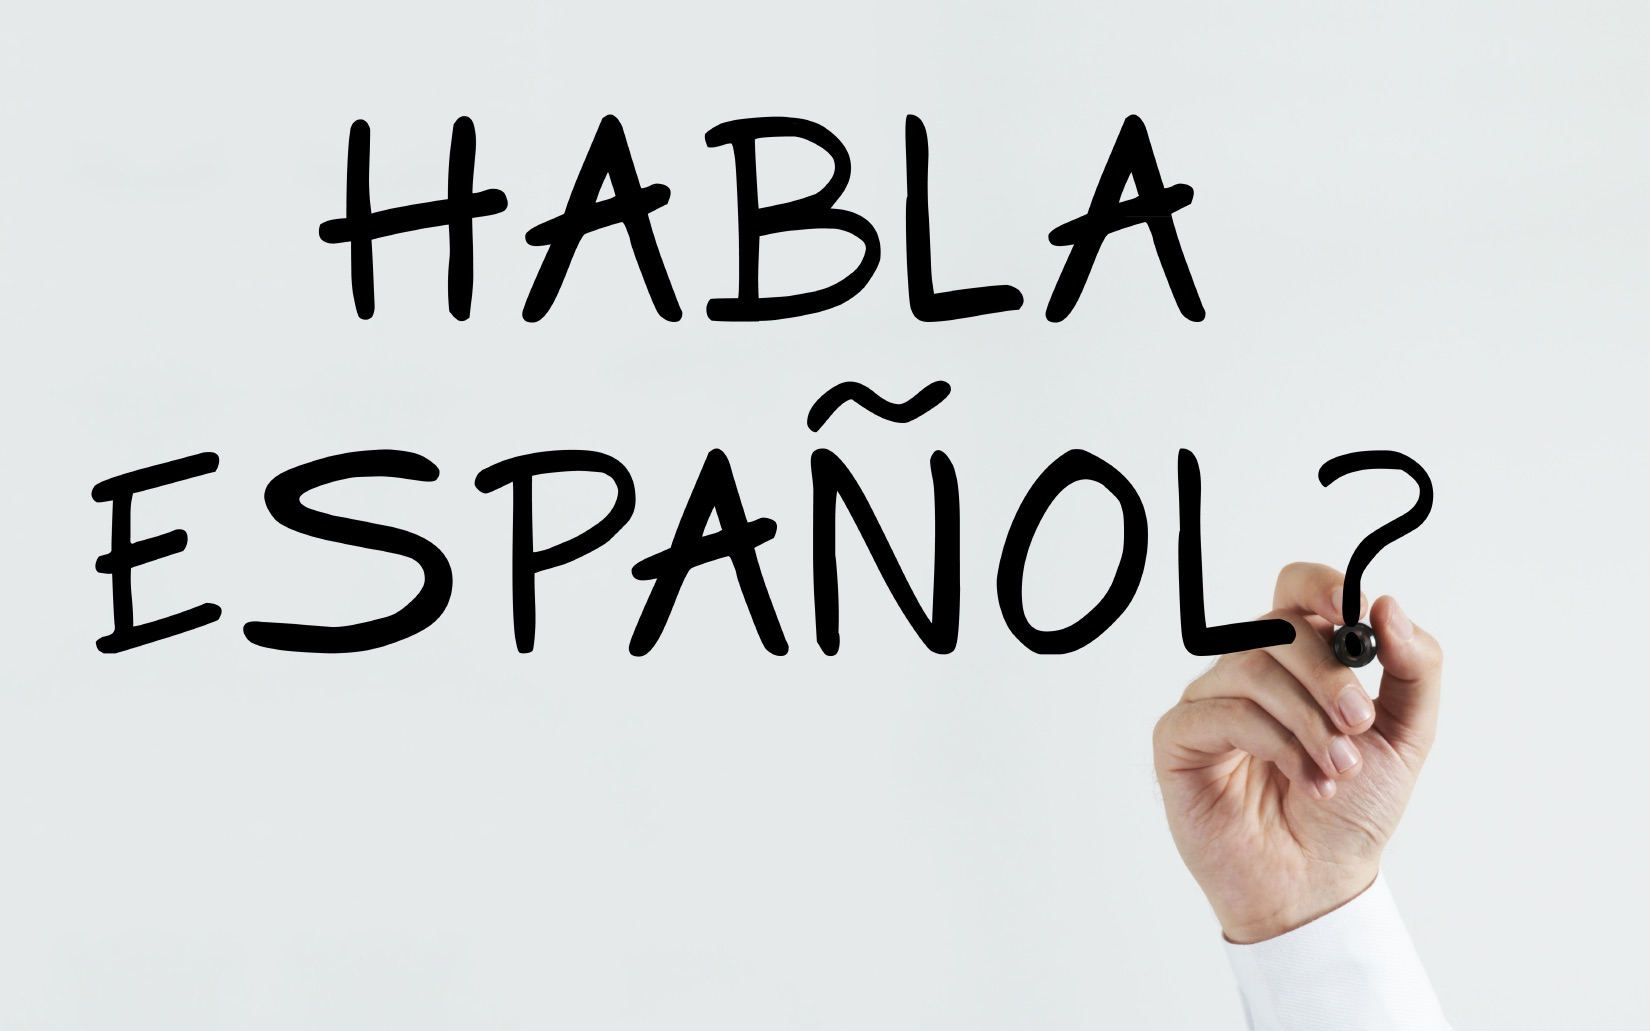 021 Essay Example Spanish To English Translation Challenges Hero Image Translate My Remarkable Into Full